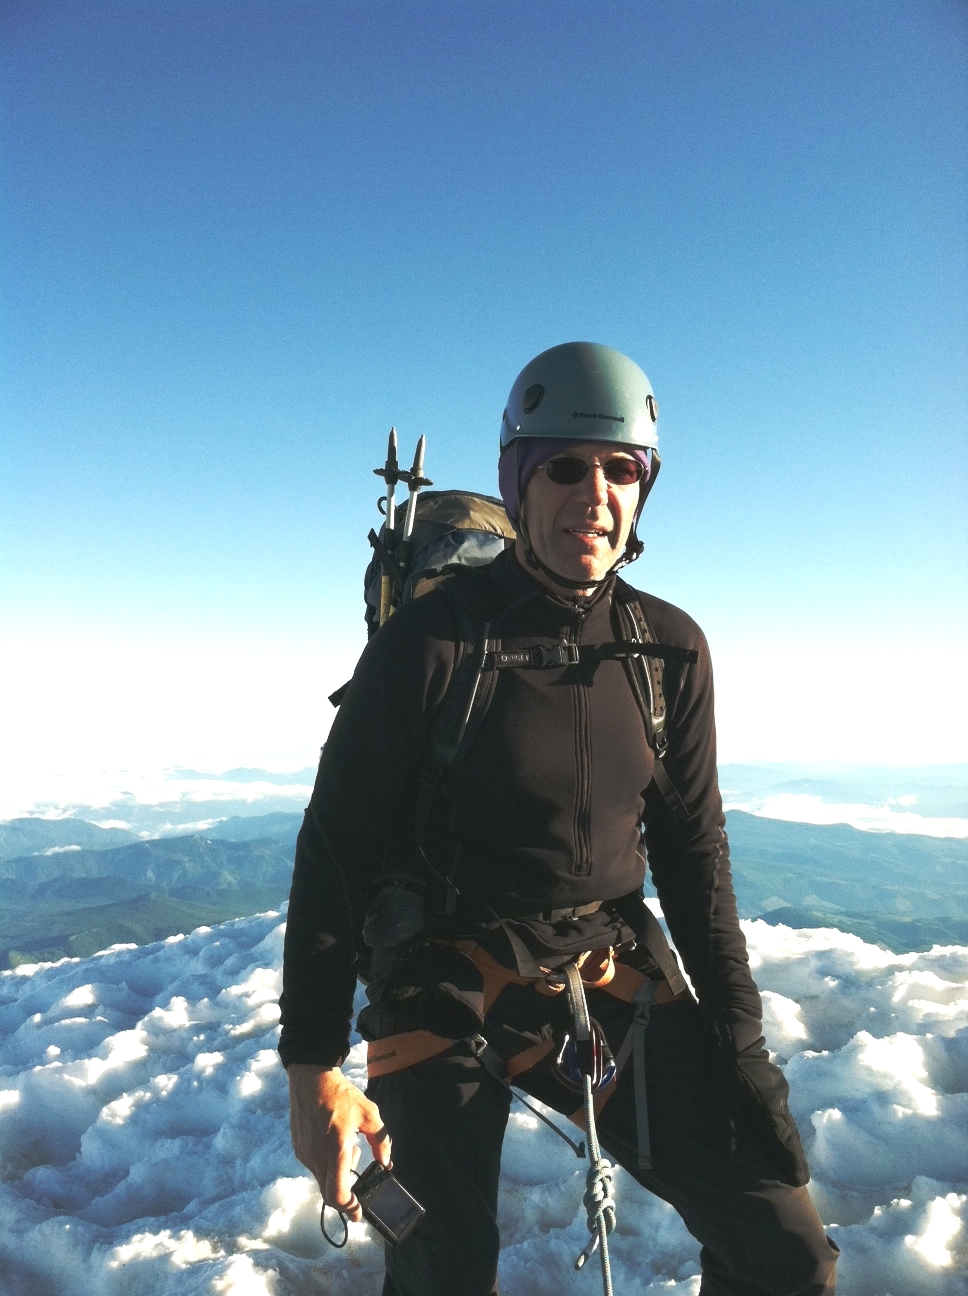 Paul Schaberg recreating on summit of Mount Hood, OR - photo by Robert Henke